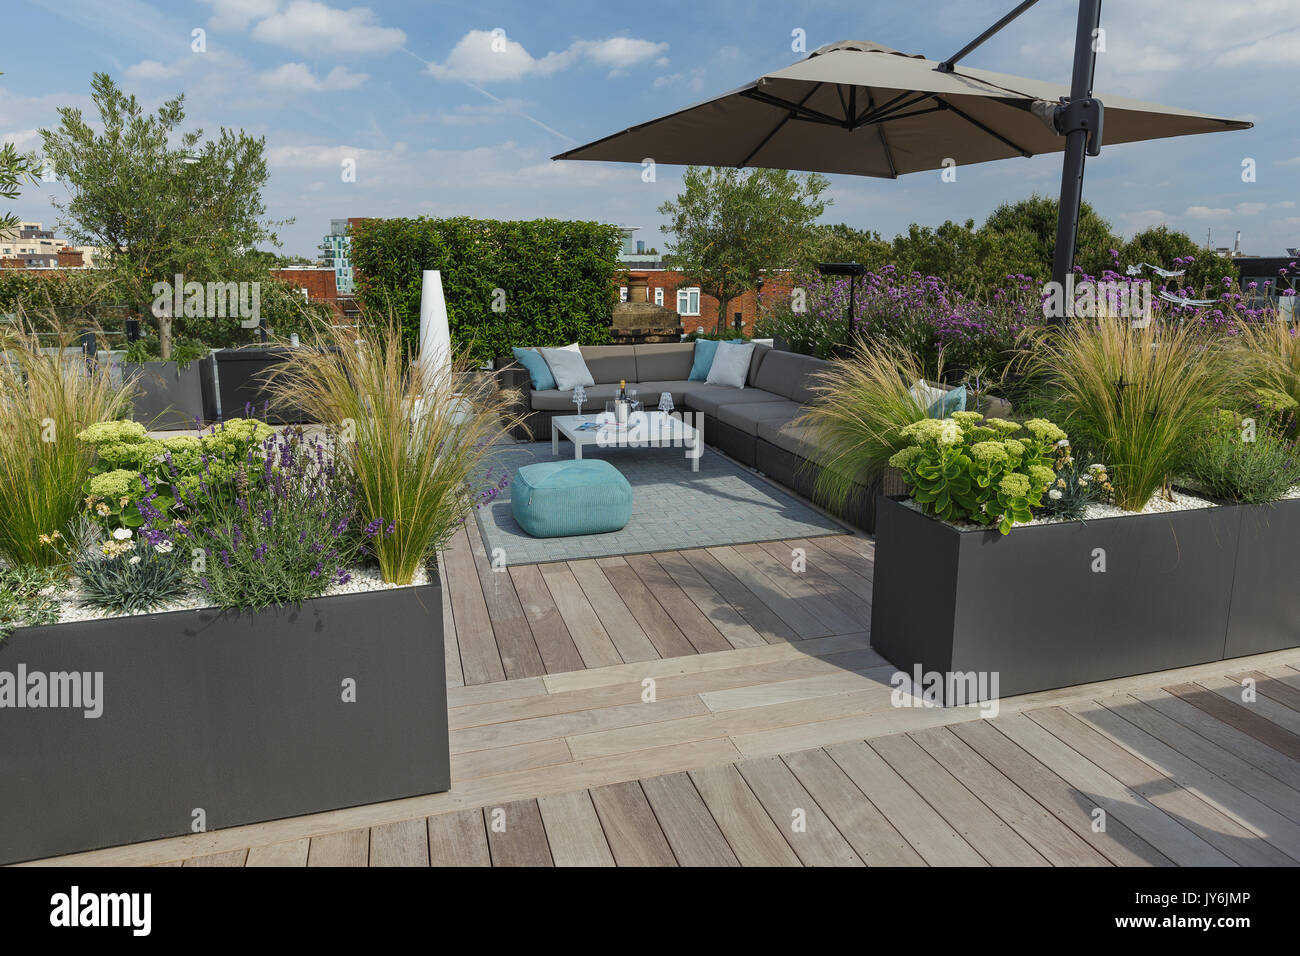 roof deck furniture. Luxurious Roof Terrace In London With Hardwood Timber Decking, Contemporary Planters Lush Planting And Modern Outdoor Furniture Deck